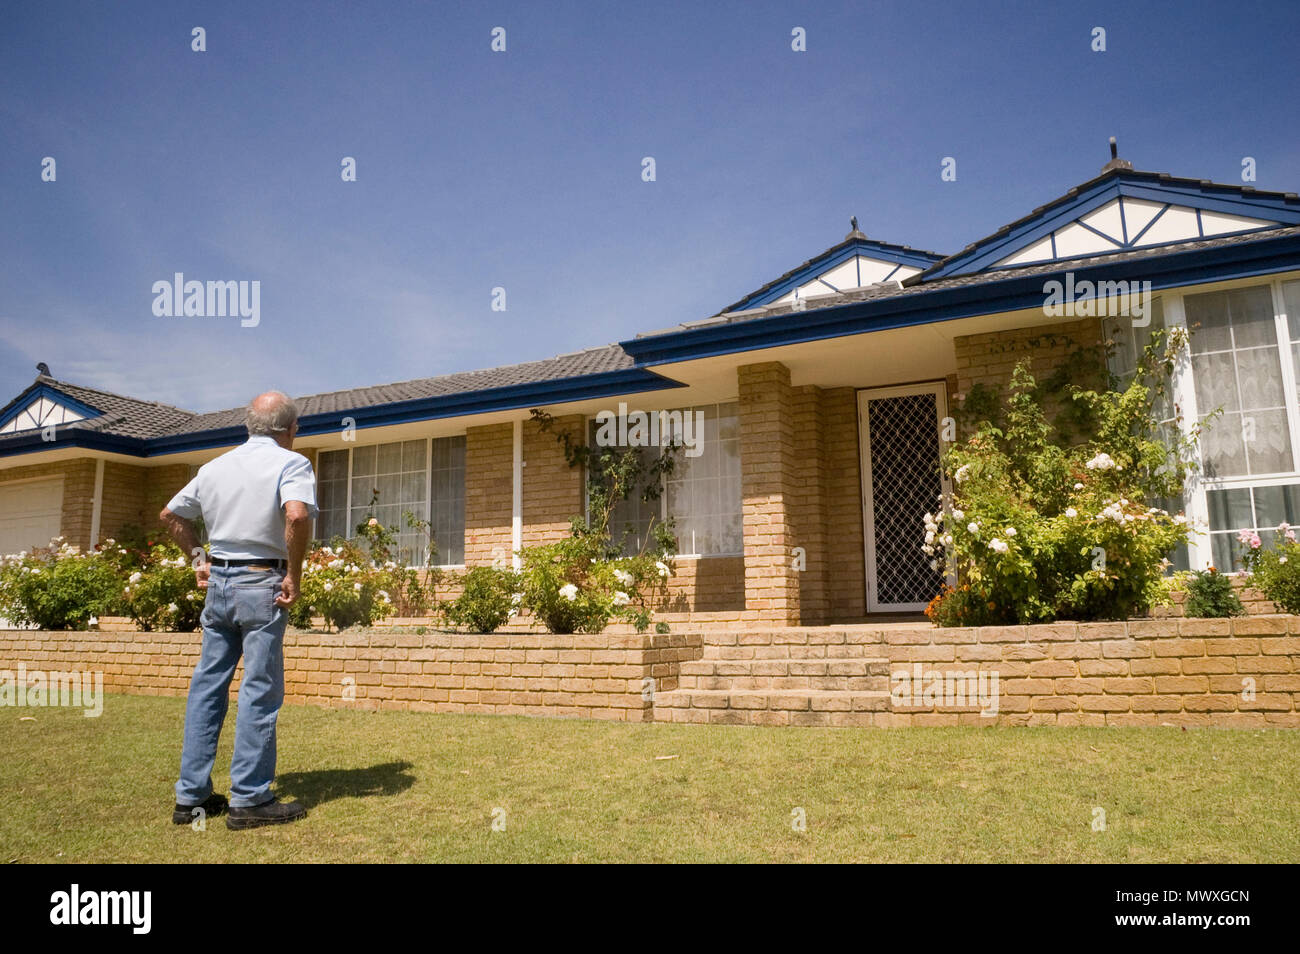 An elderly man standing in the front yard of his home, rear view. - Stock Image